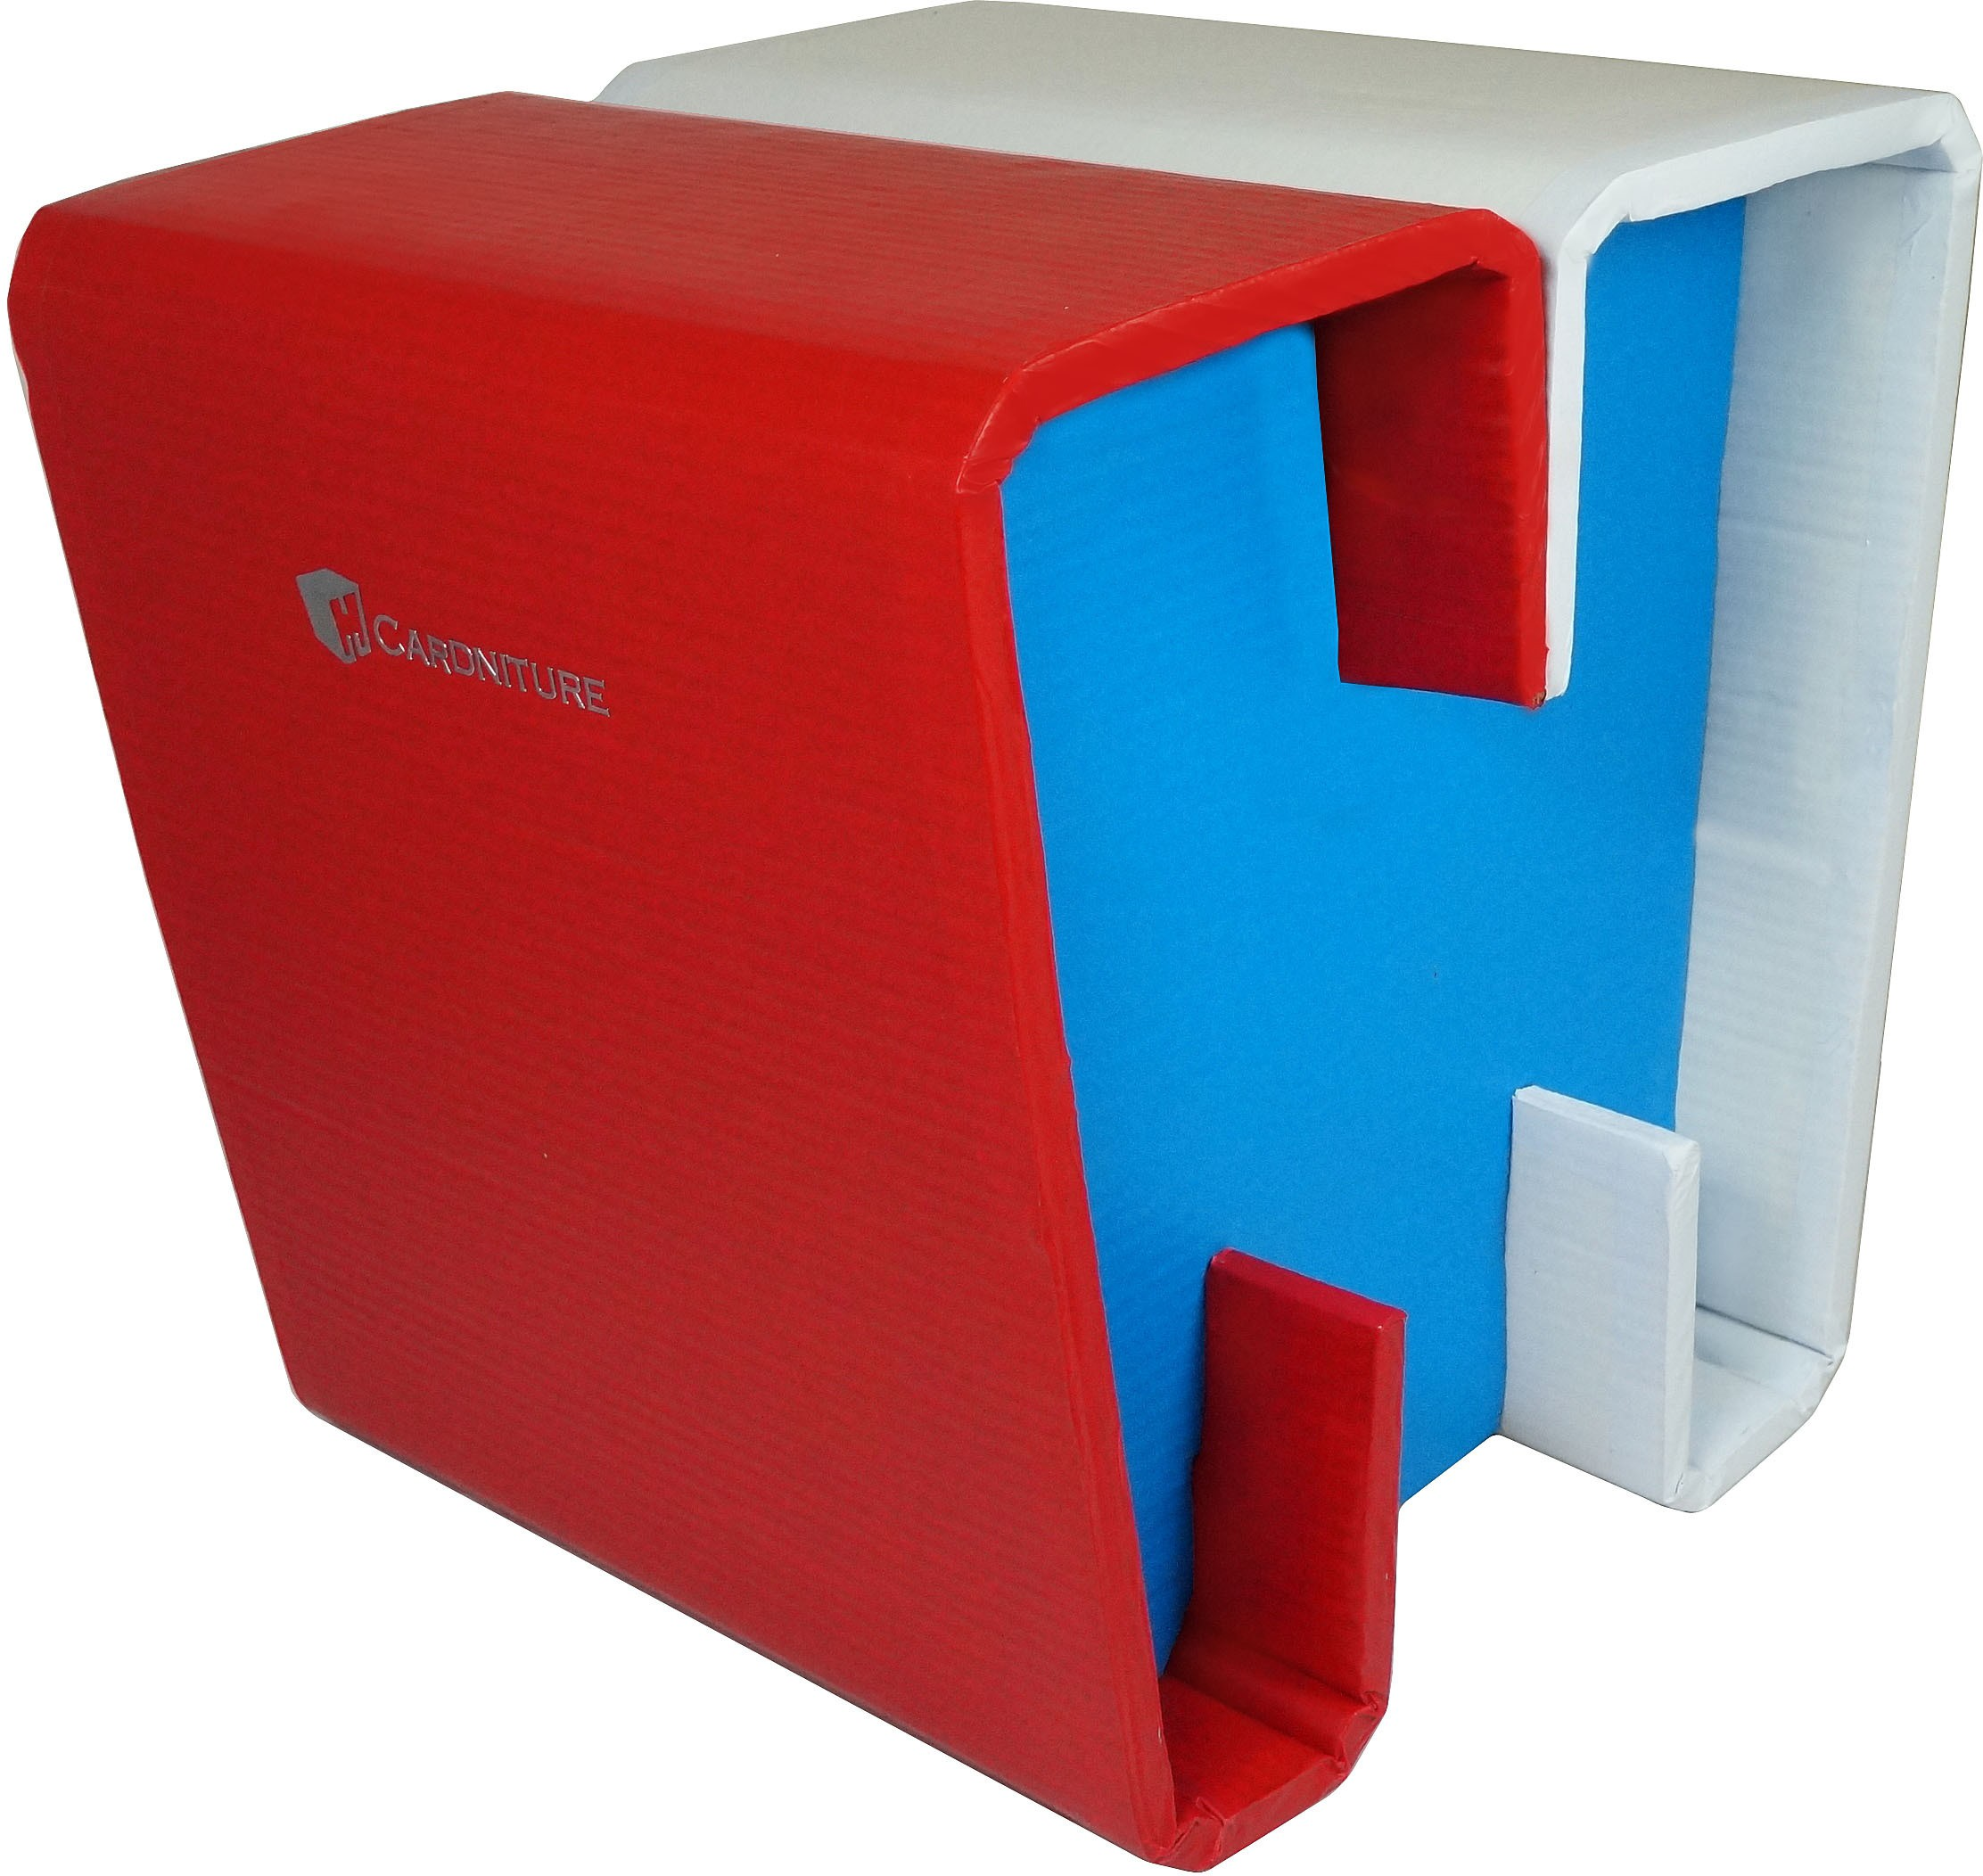 View Cardniture ZING Living & Bedroom Stool(Red, Blue, White) Furniture (Cardniture)